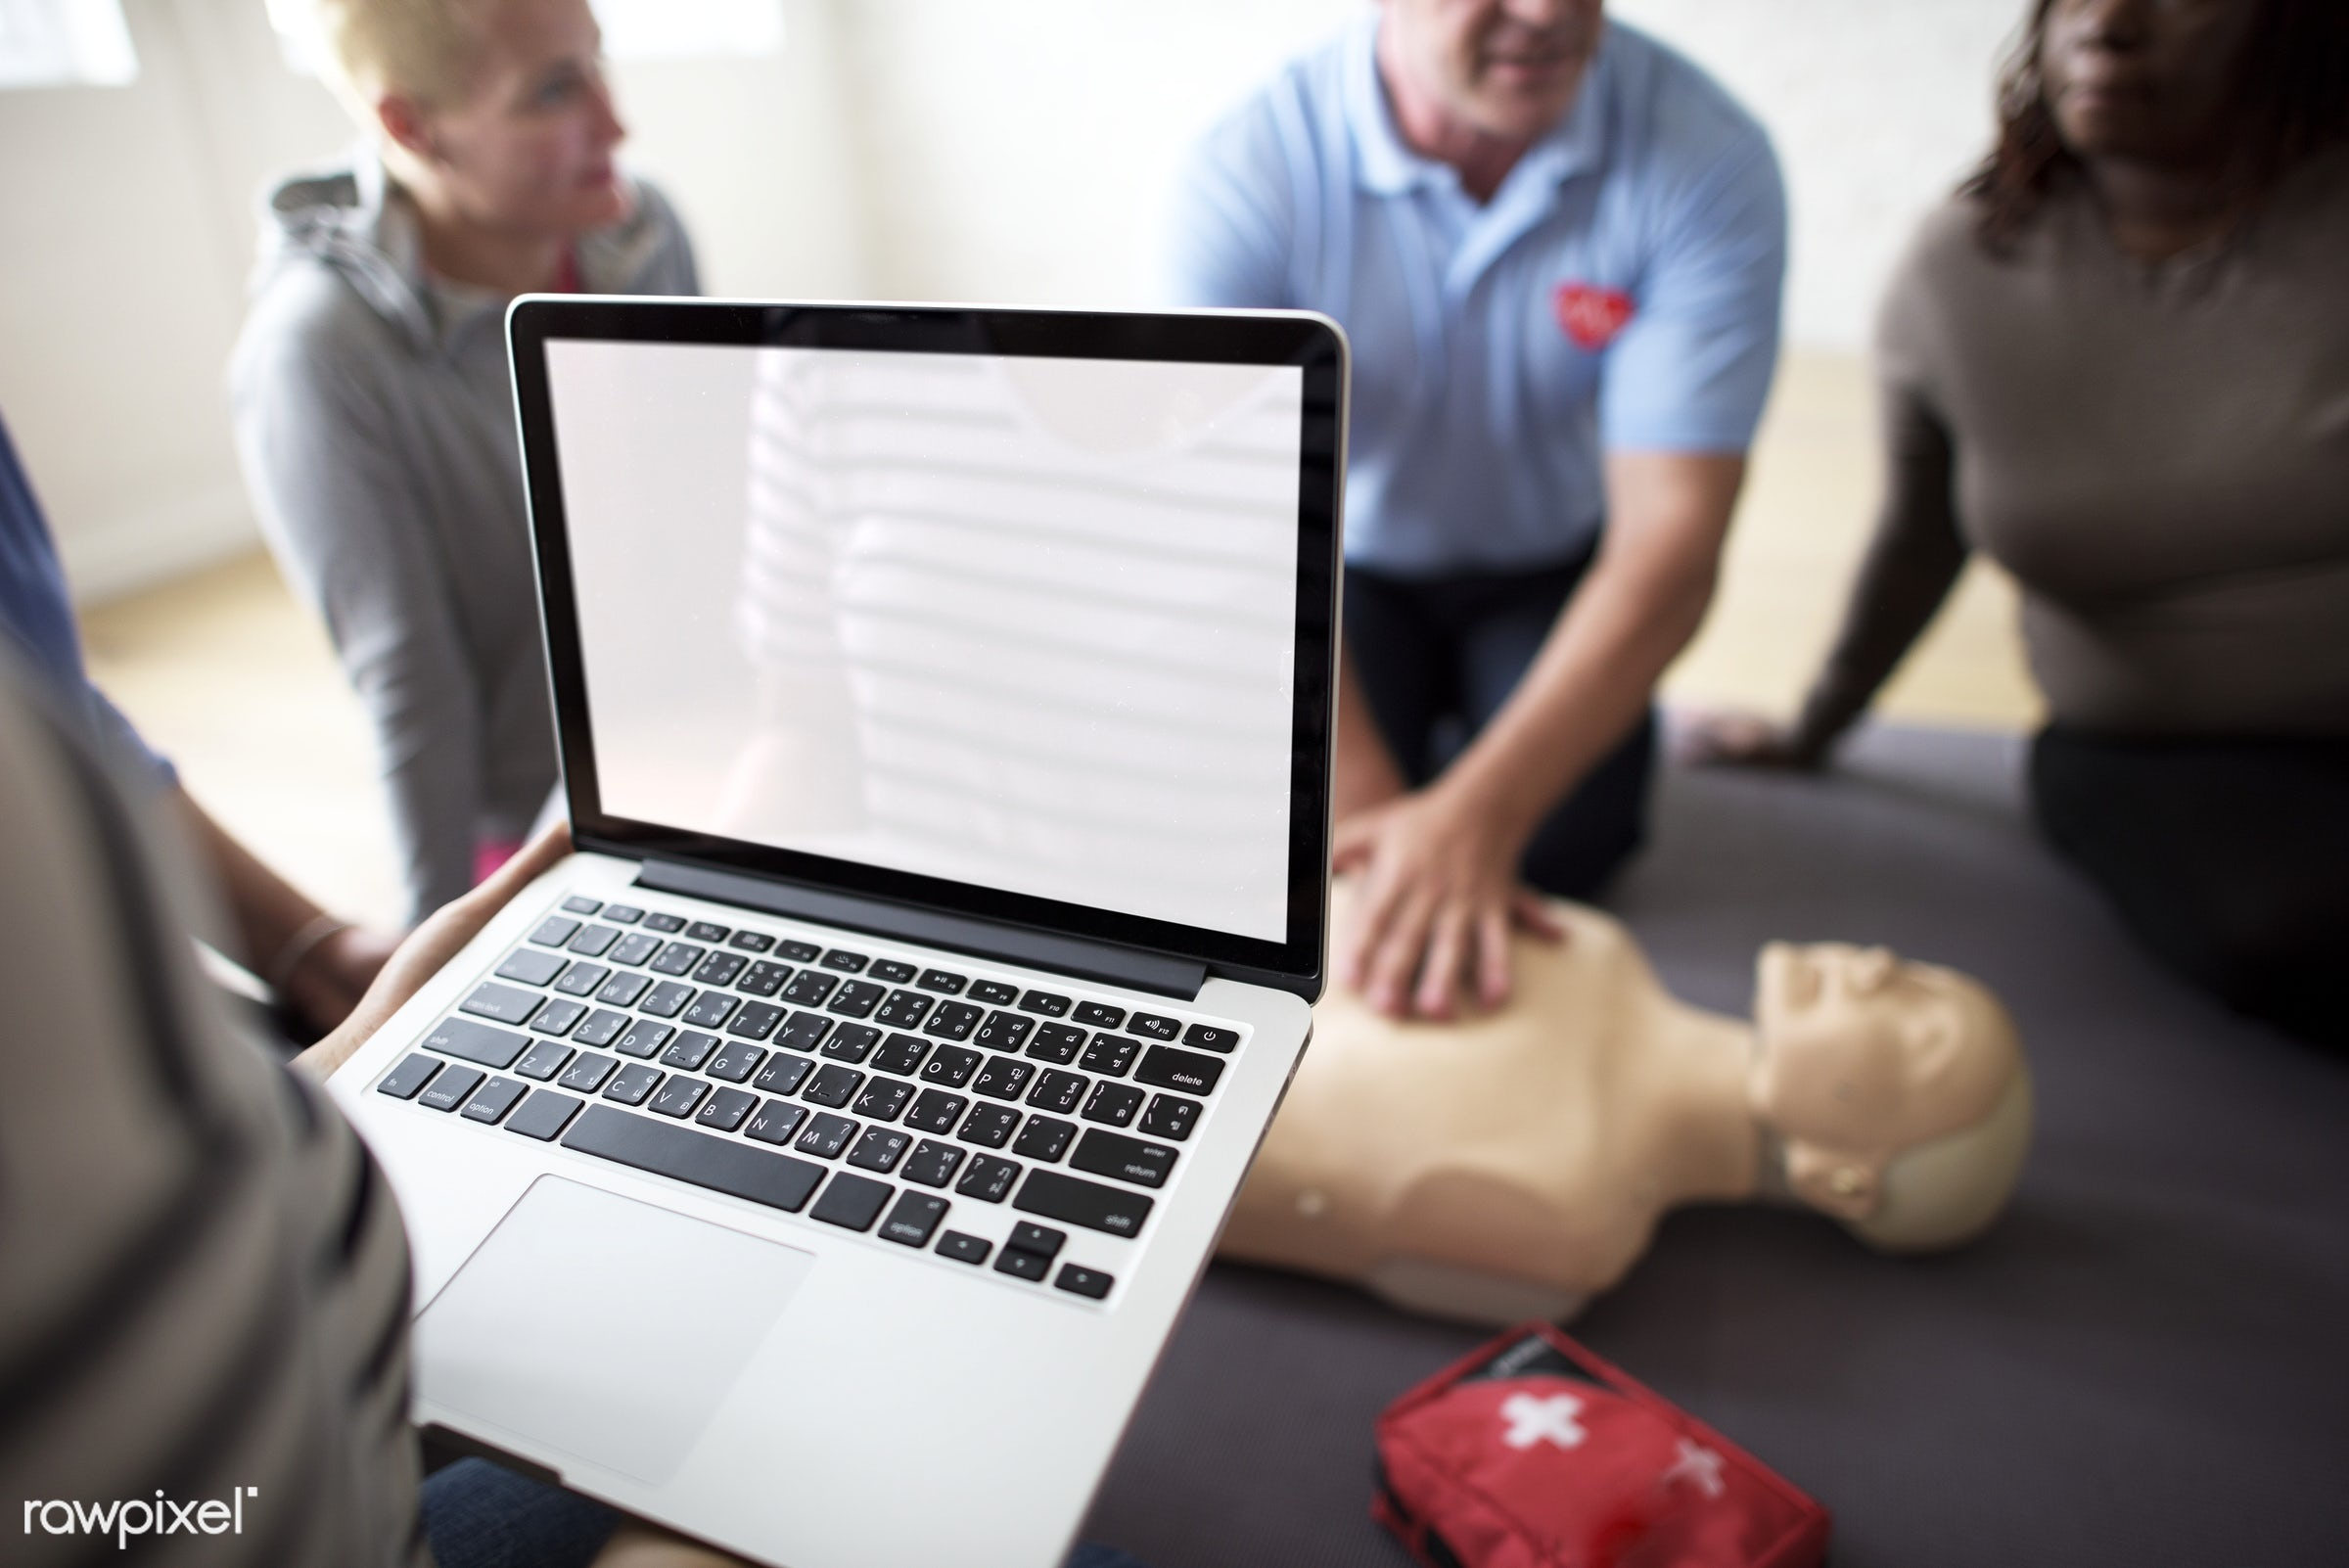 CPR first aid training class - cpr training, person, technology, knowledge, save, first aid, treatment, resuscitation,...